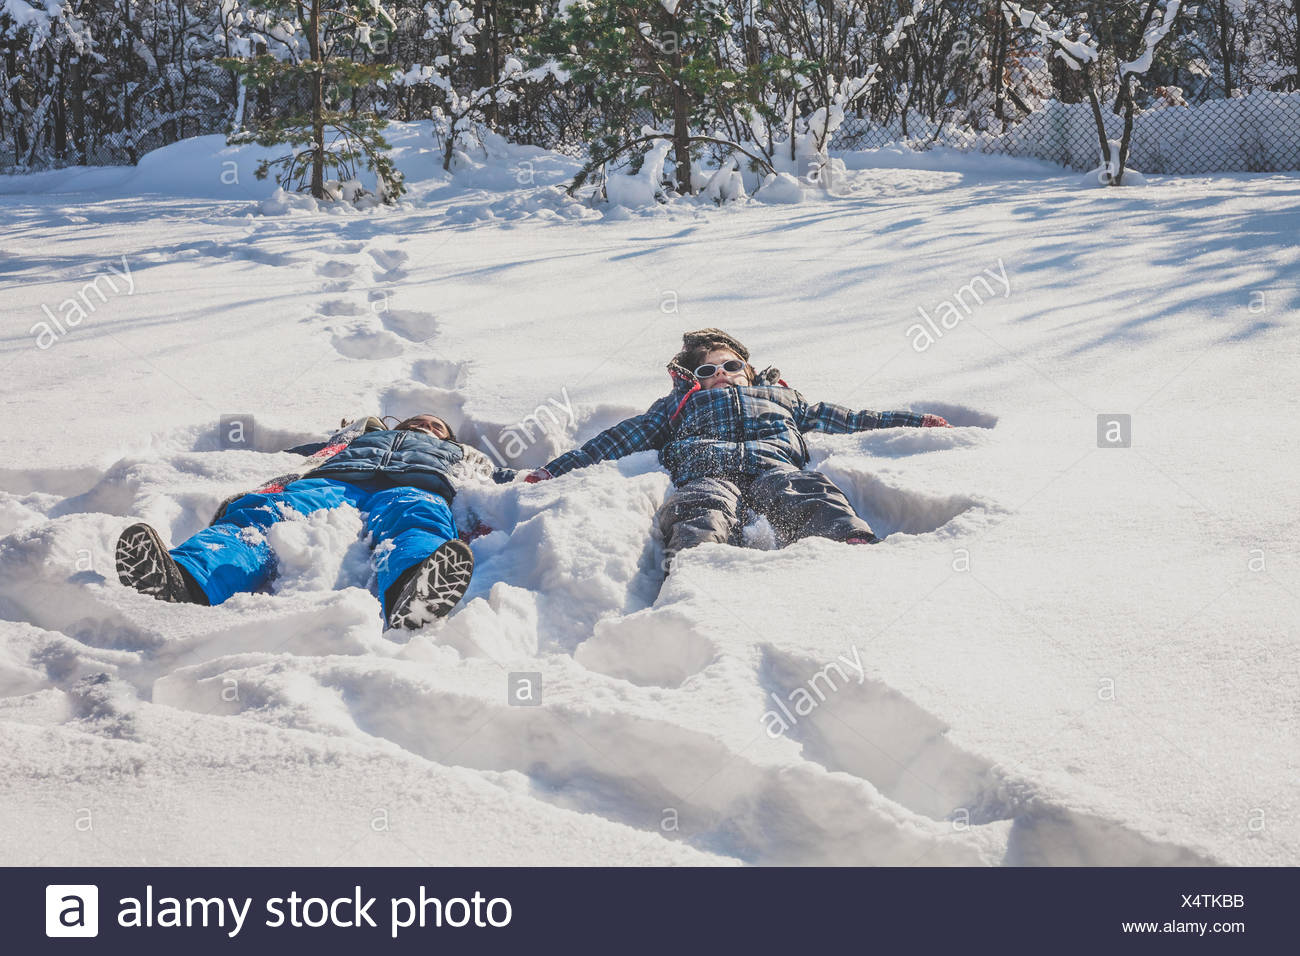 Boy and girl lying in snow making snow angels in the snow - Stock Image